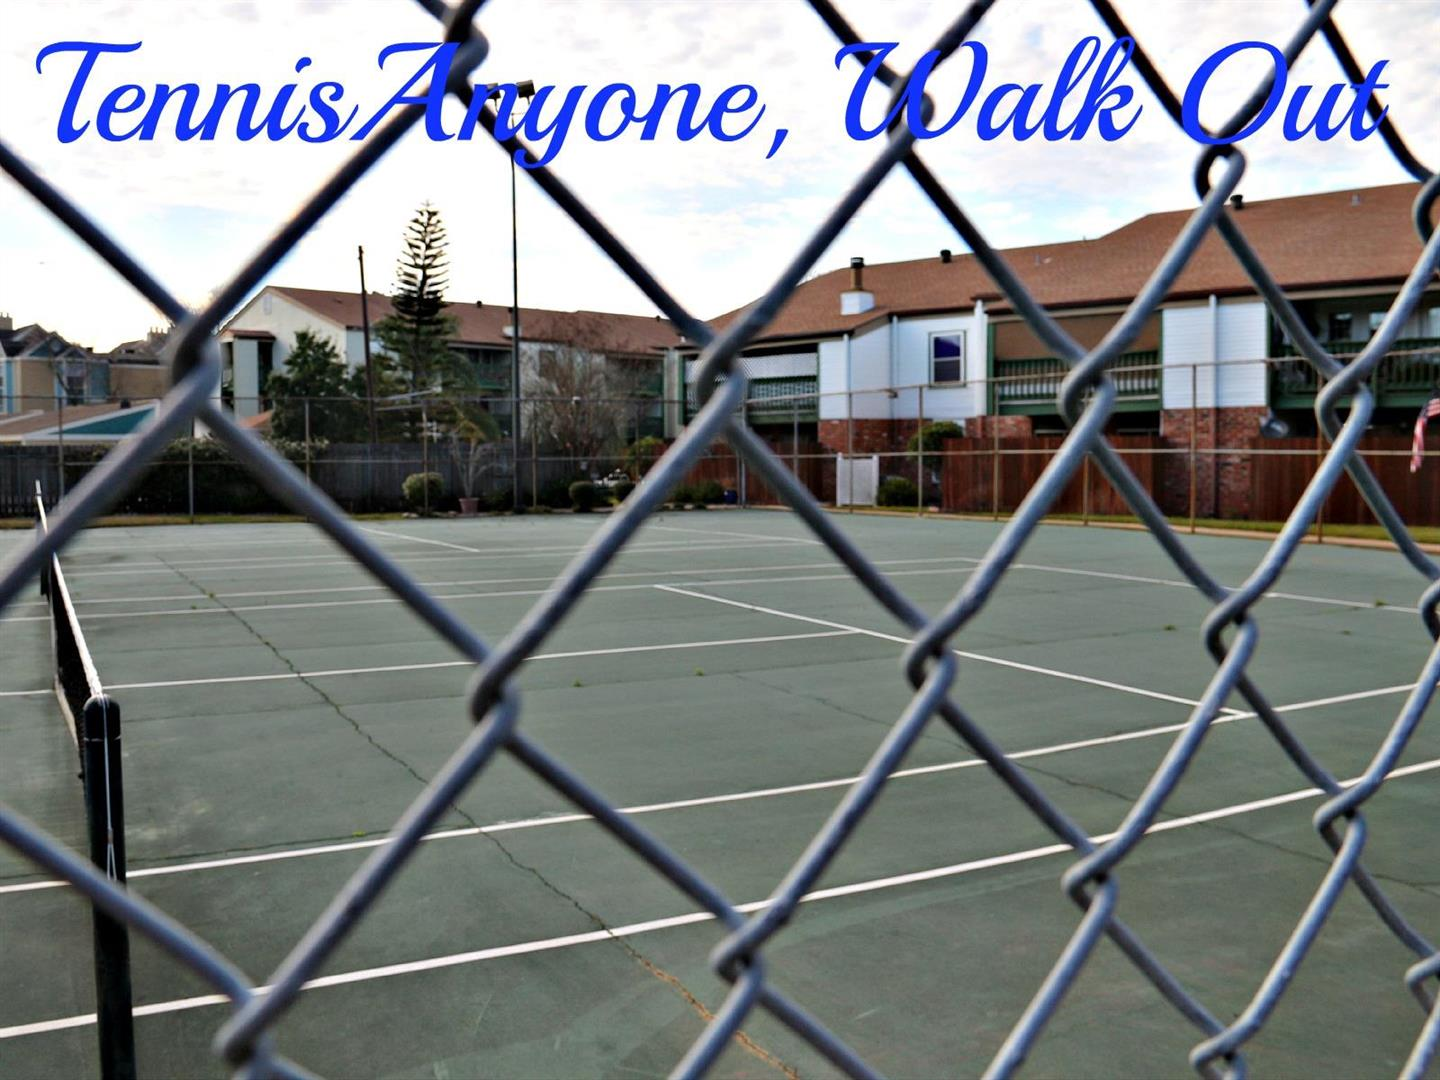 832S.ClearviewCondos,tennis.jpg